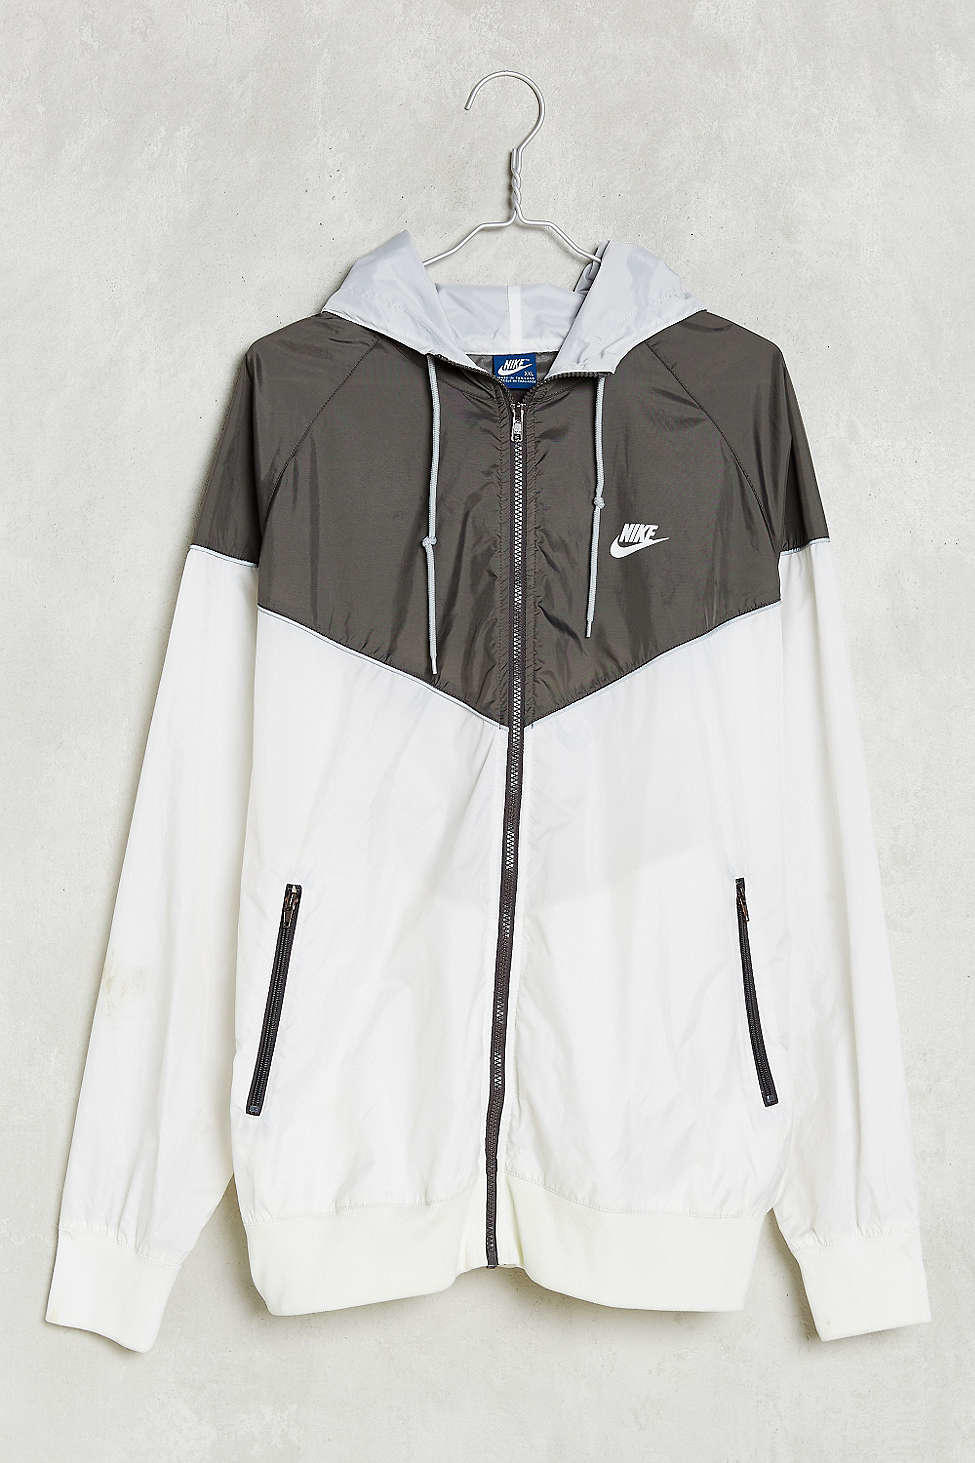 Case Design what stores sell phone cases : Vintage Nike Windbreaker Jacket - Urban from Urban Outfitters